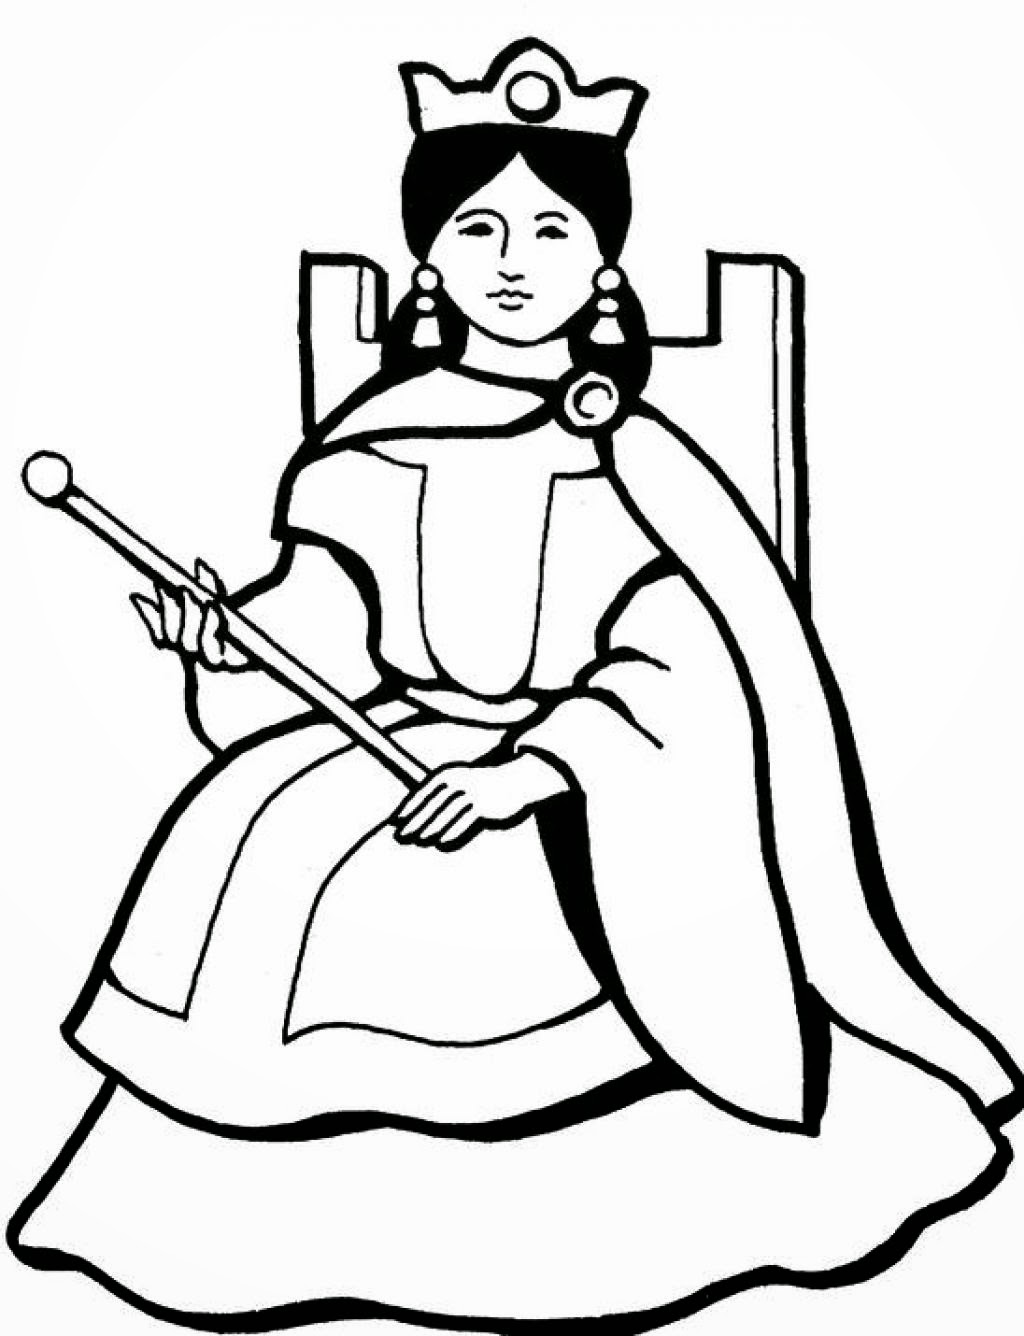 Queen Diamond Coloring Pages